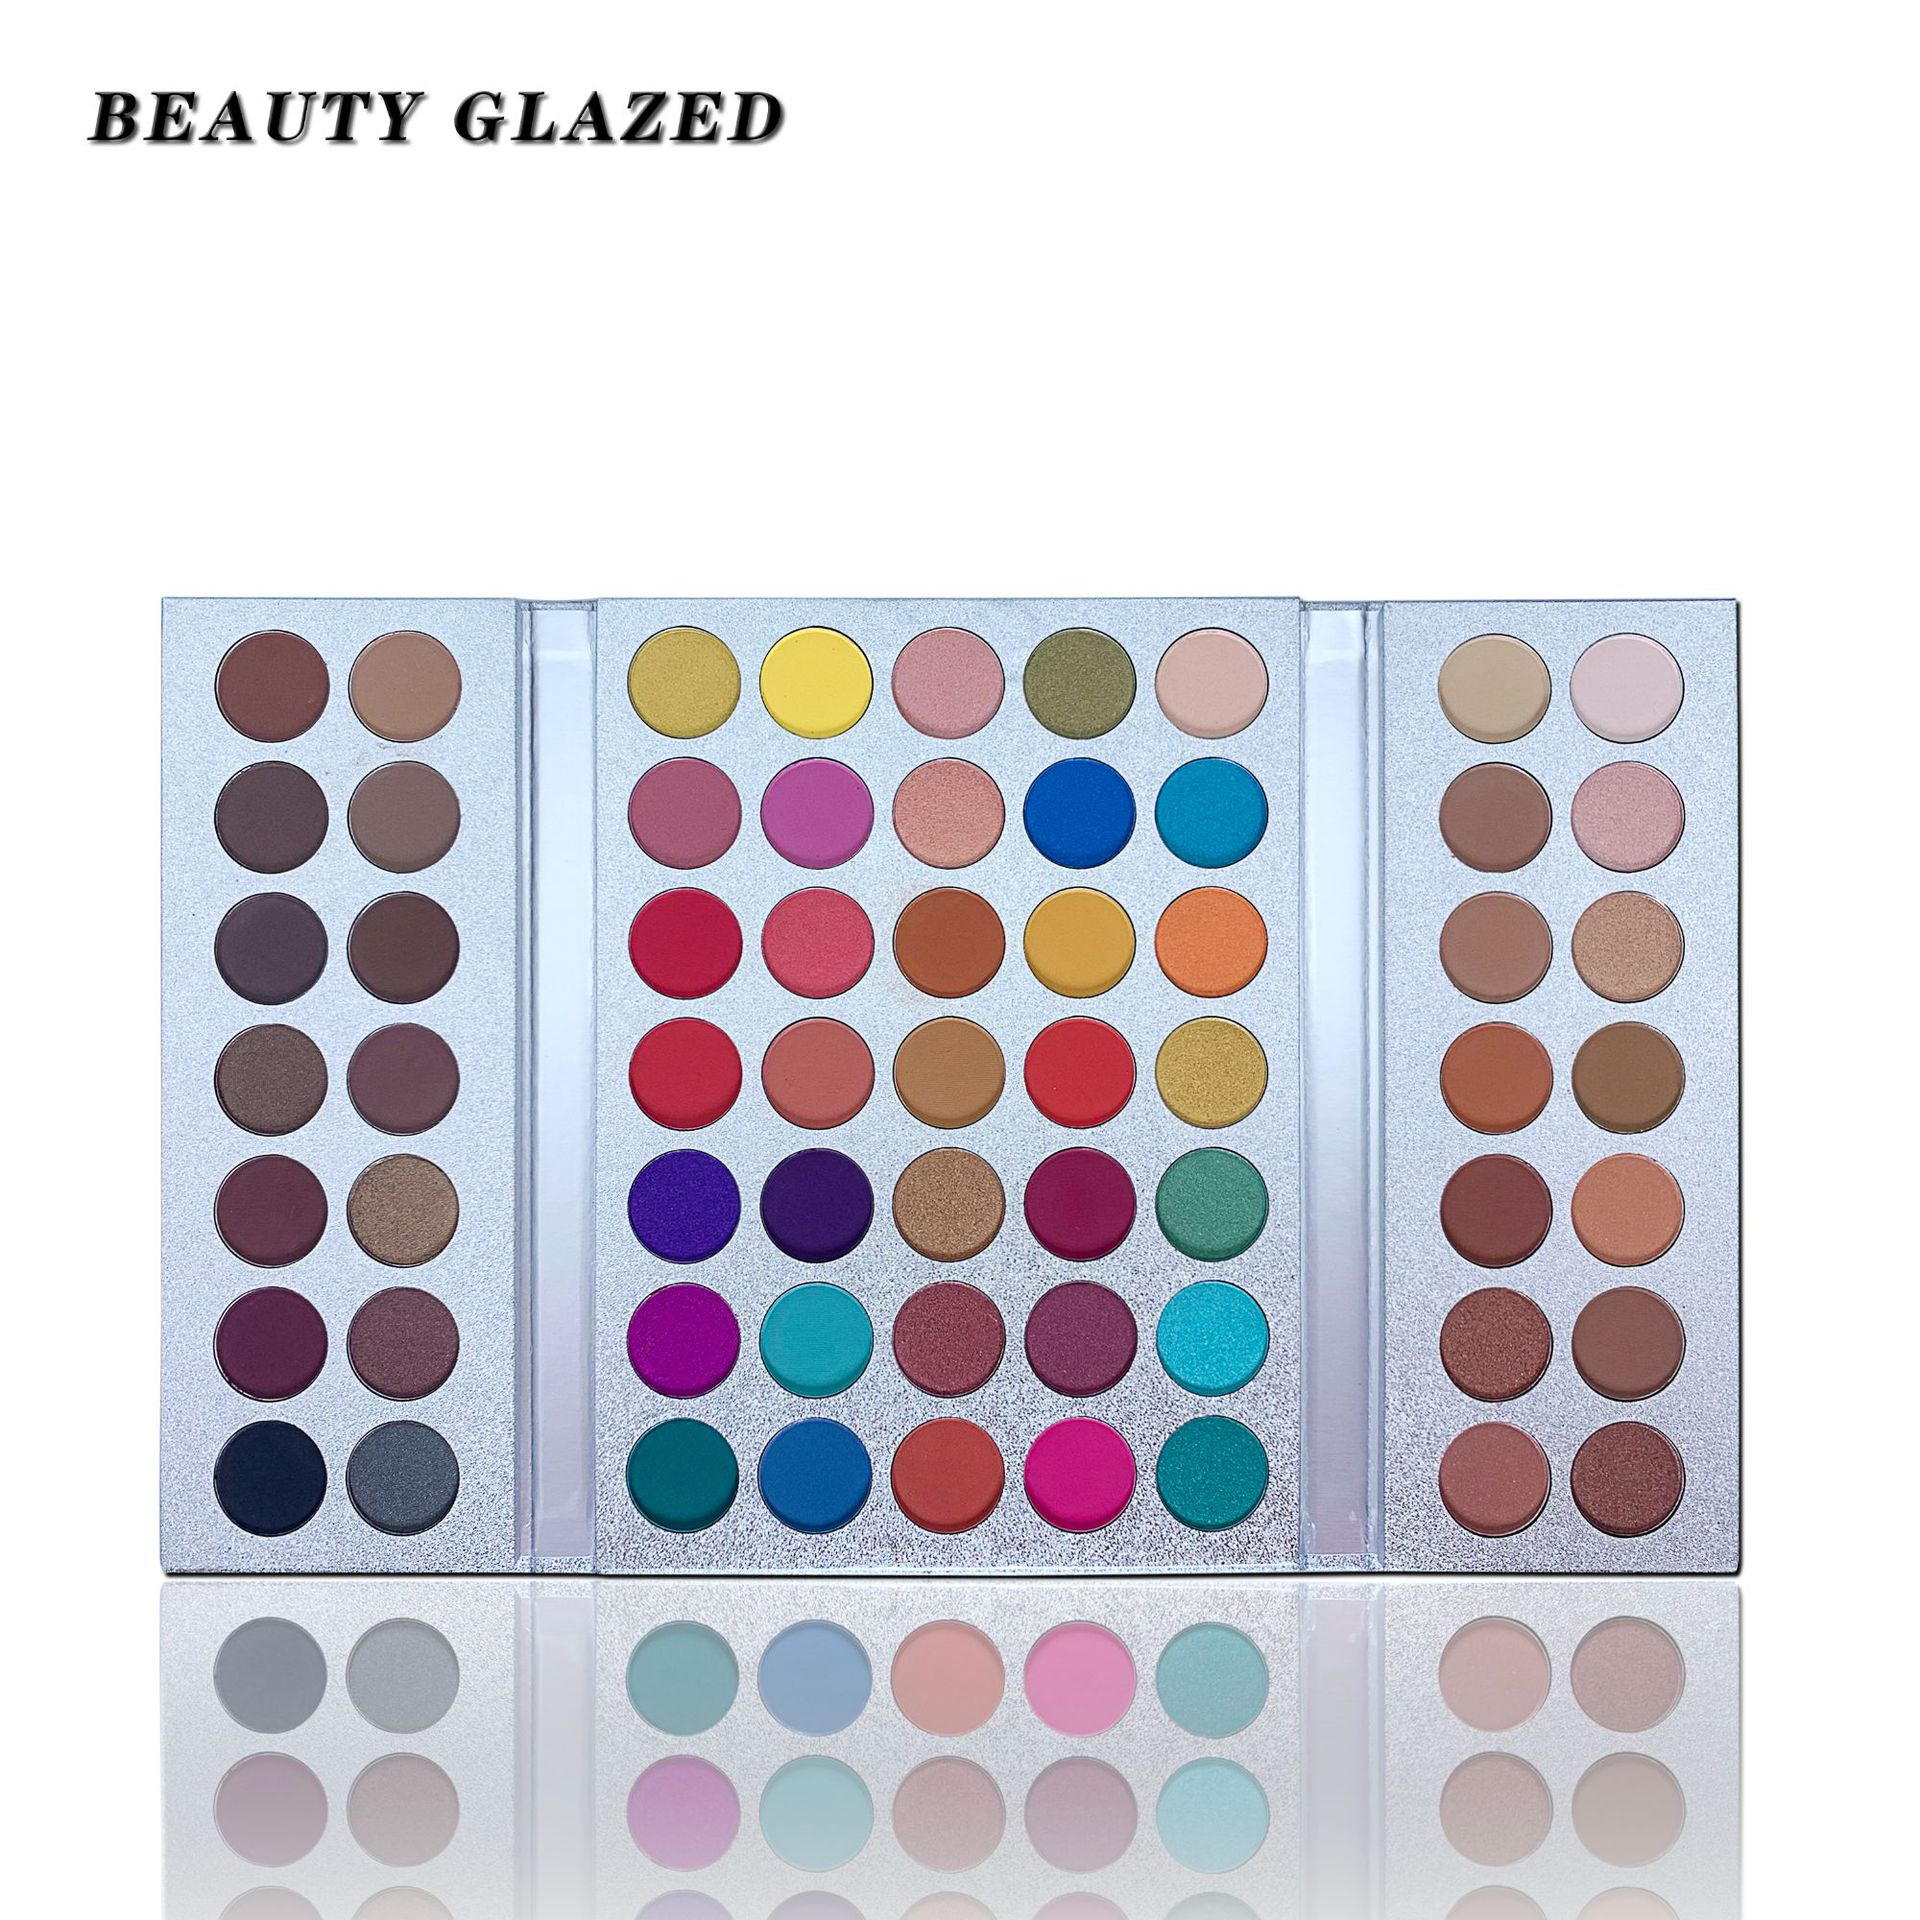 <font><b>Beauty</b></font> Glazed Gorgeous Me Eyeshadow Palette 63 Colors Shimmer Matte Eye Shadow Powder Makeup Pallete Waterproof Pigmented image